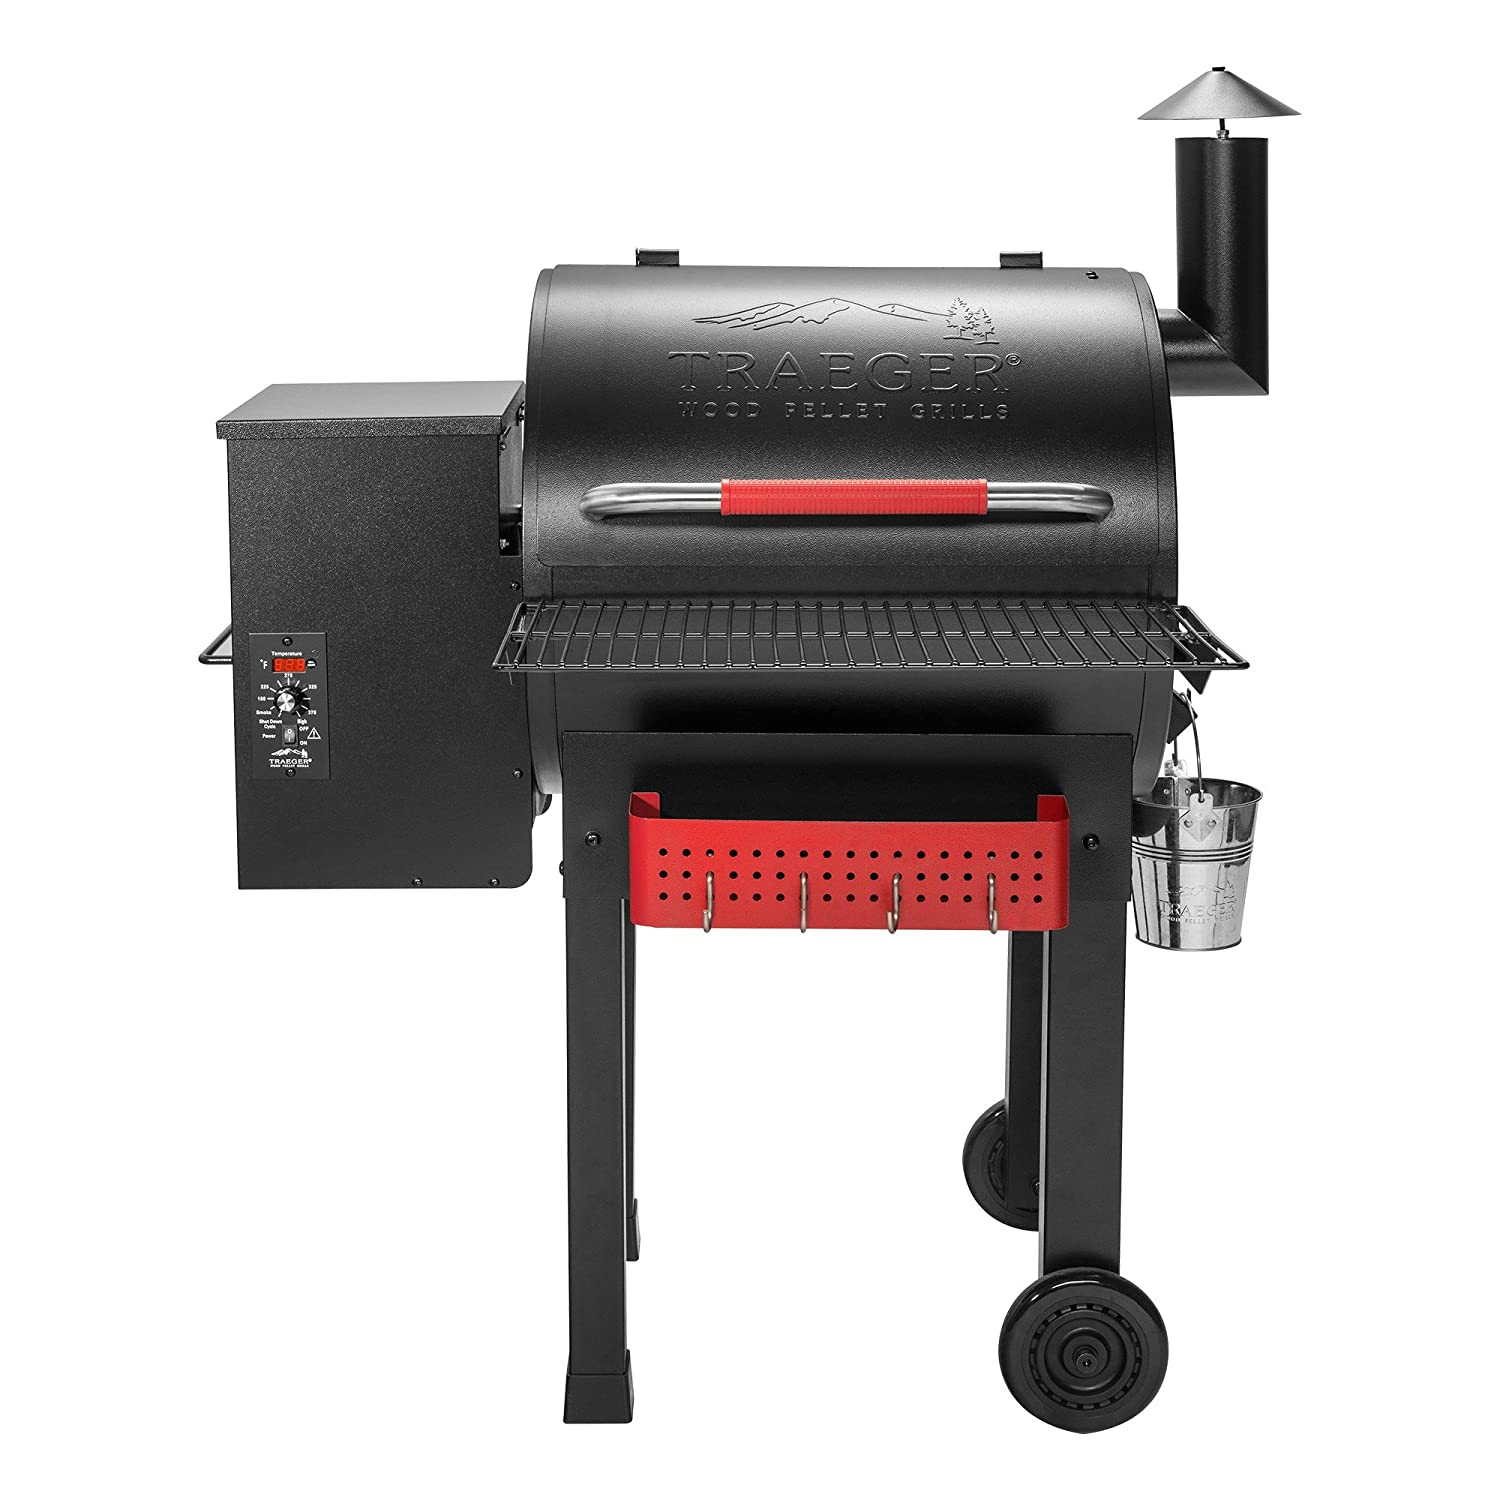 Traeger Grills TFB38TCA Renegade Elite Wood Pellet Grill and Smoker with Built In Tool Rack and Shelf - Grill, Smoke, Bake, Roast, Braise and BBQ